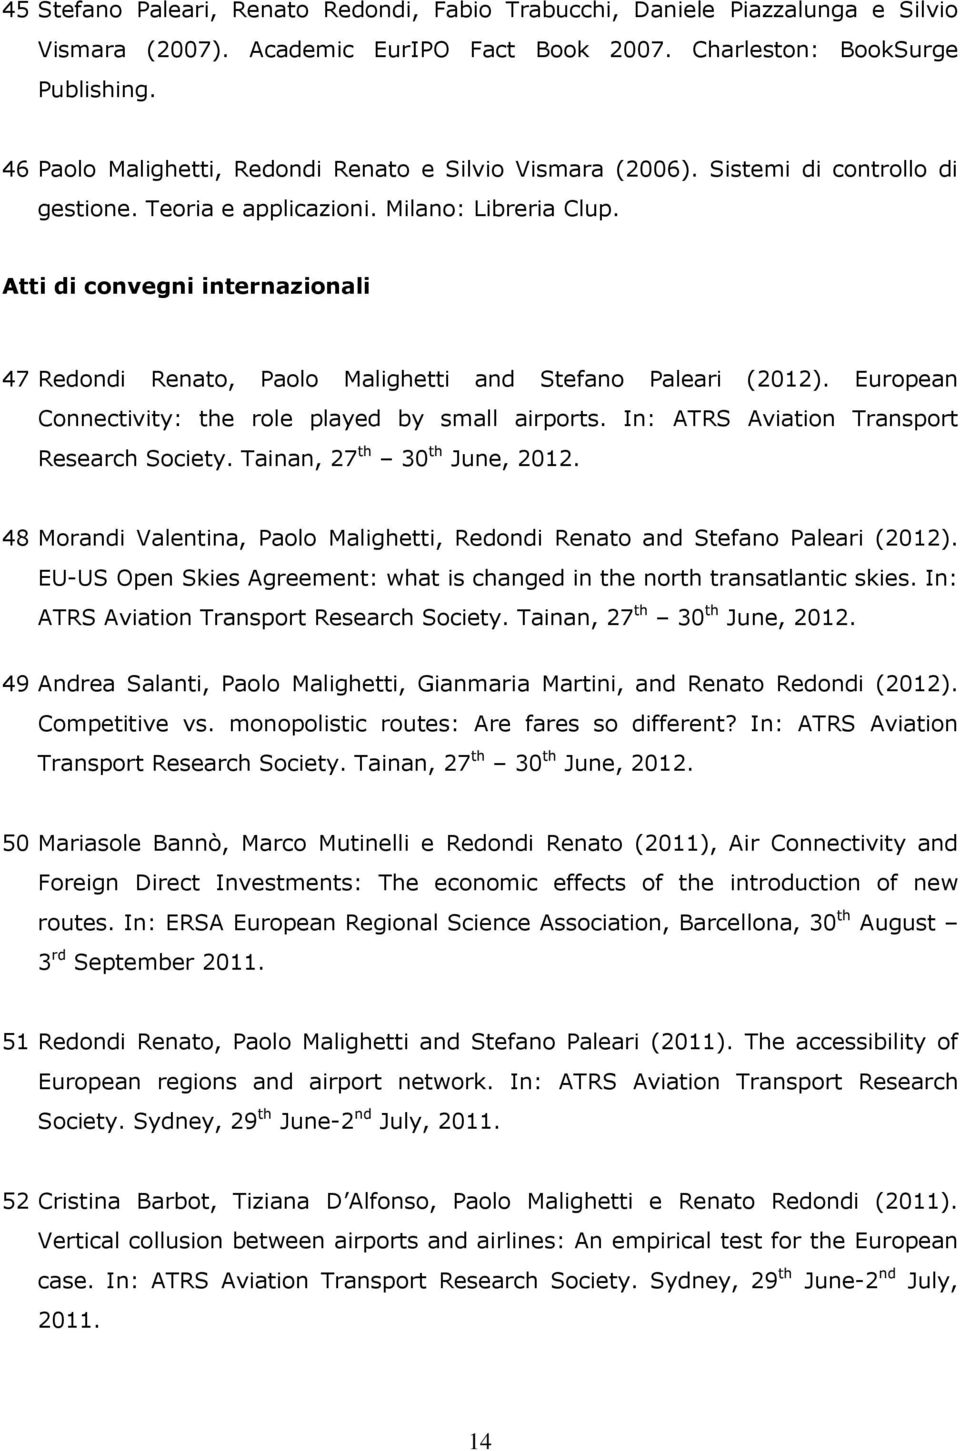 Atti di convegni internazionali 47 Redondi Renato, Paolo Malighetti and Stefano Paleari (2012). European Connectivity: the role played by small airports. In: ATRS Aviation Transport Research Society.